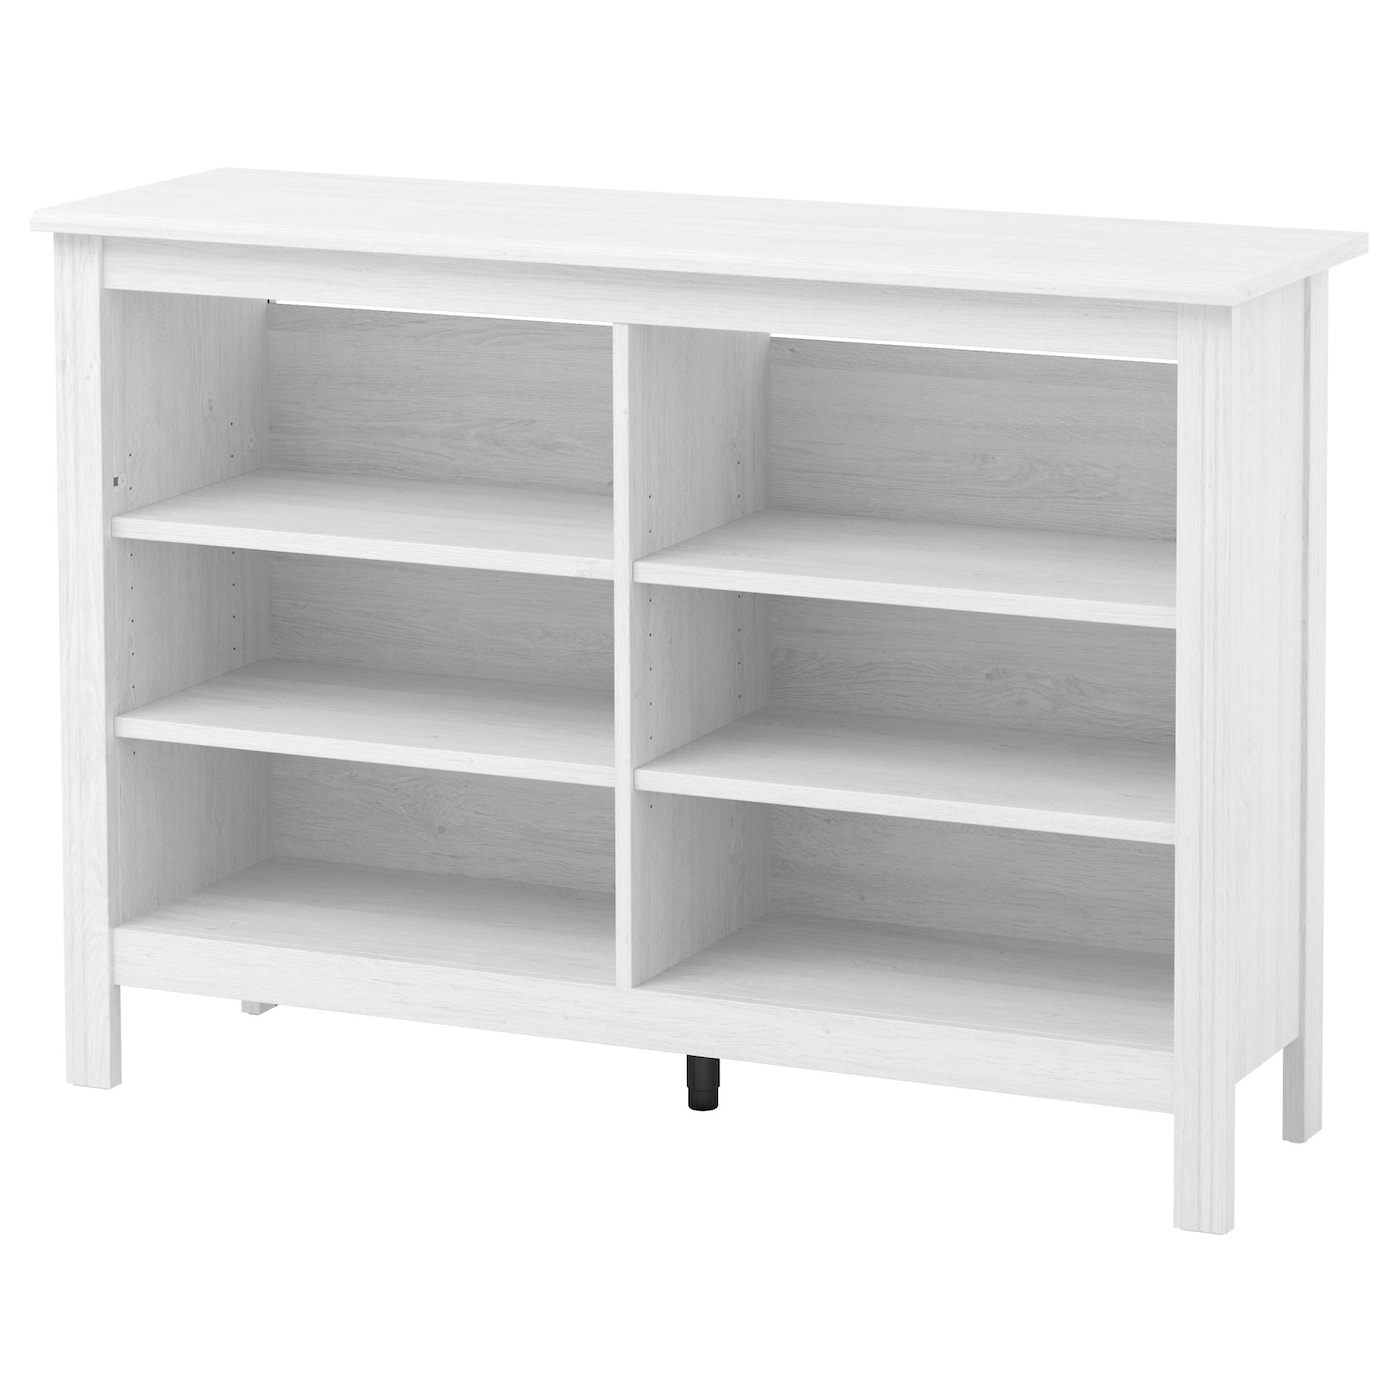 Brusali tv bench white 120x85 cm ikea for Mueble bar ikea